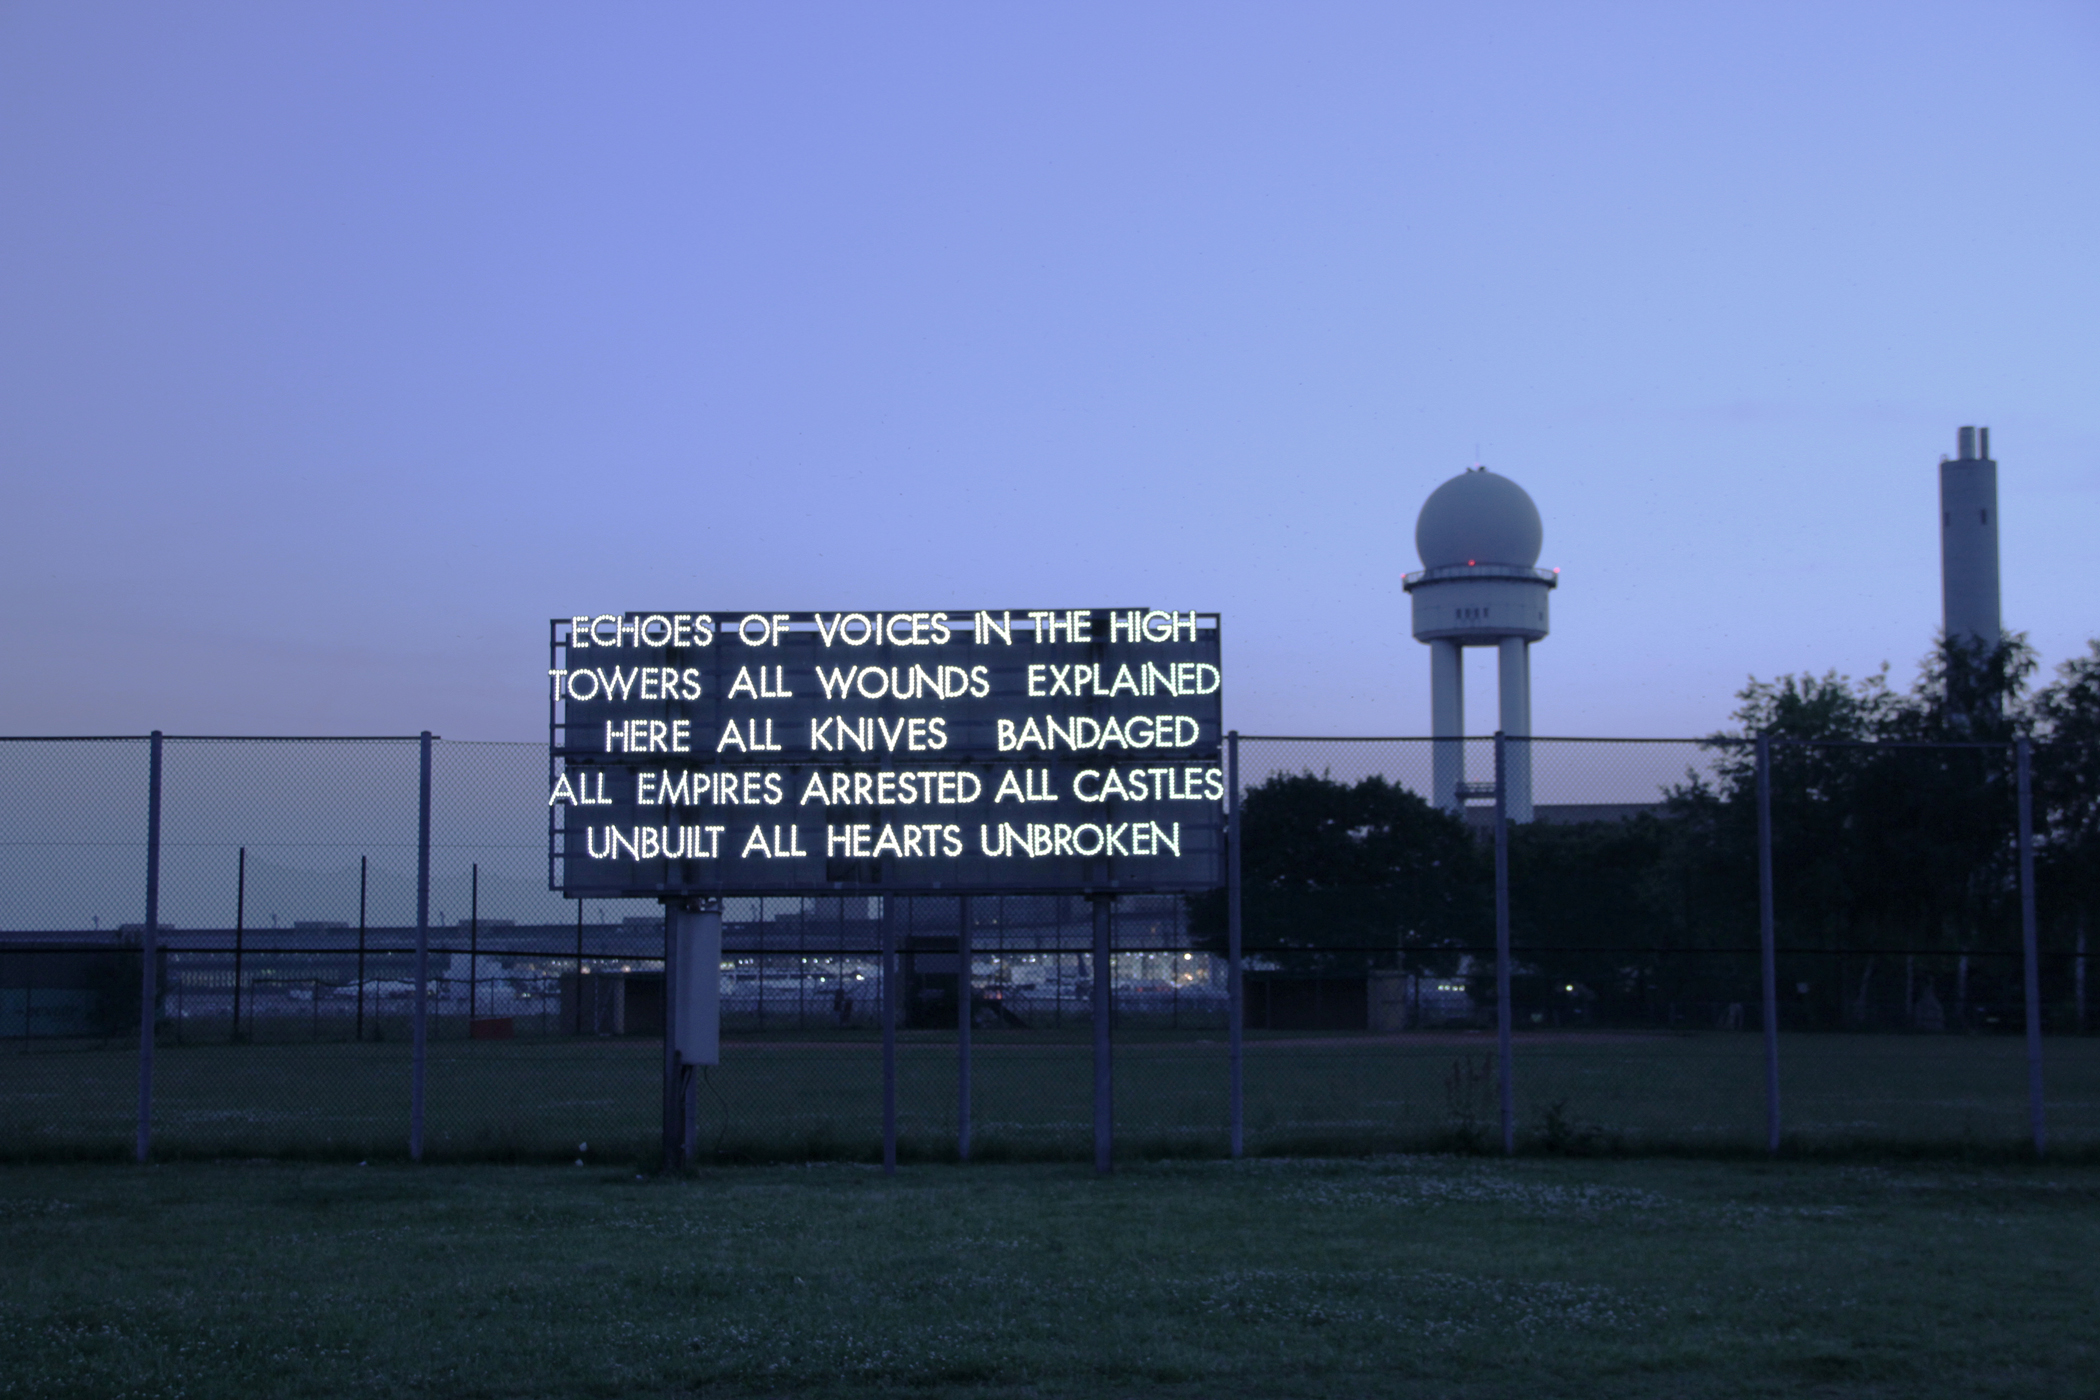 Robert Montgomery - Echoes of voices in the high towers all wounds explained here all knives bandaged all empires arrested all castles unbuilt all hearts unbroken, 2012, Berlin, Germany